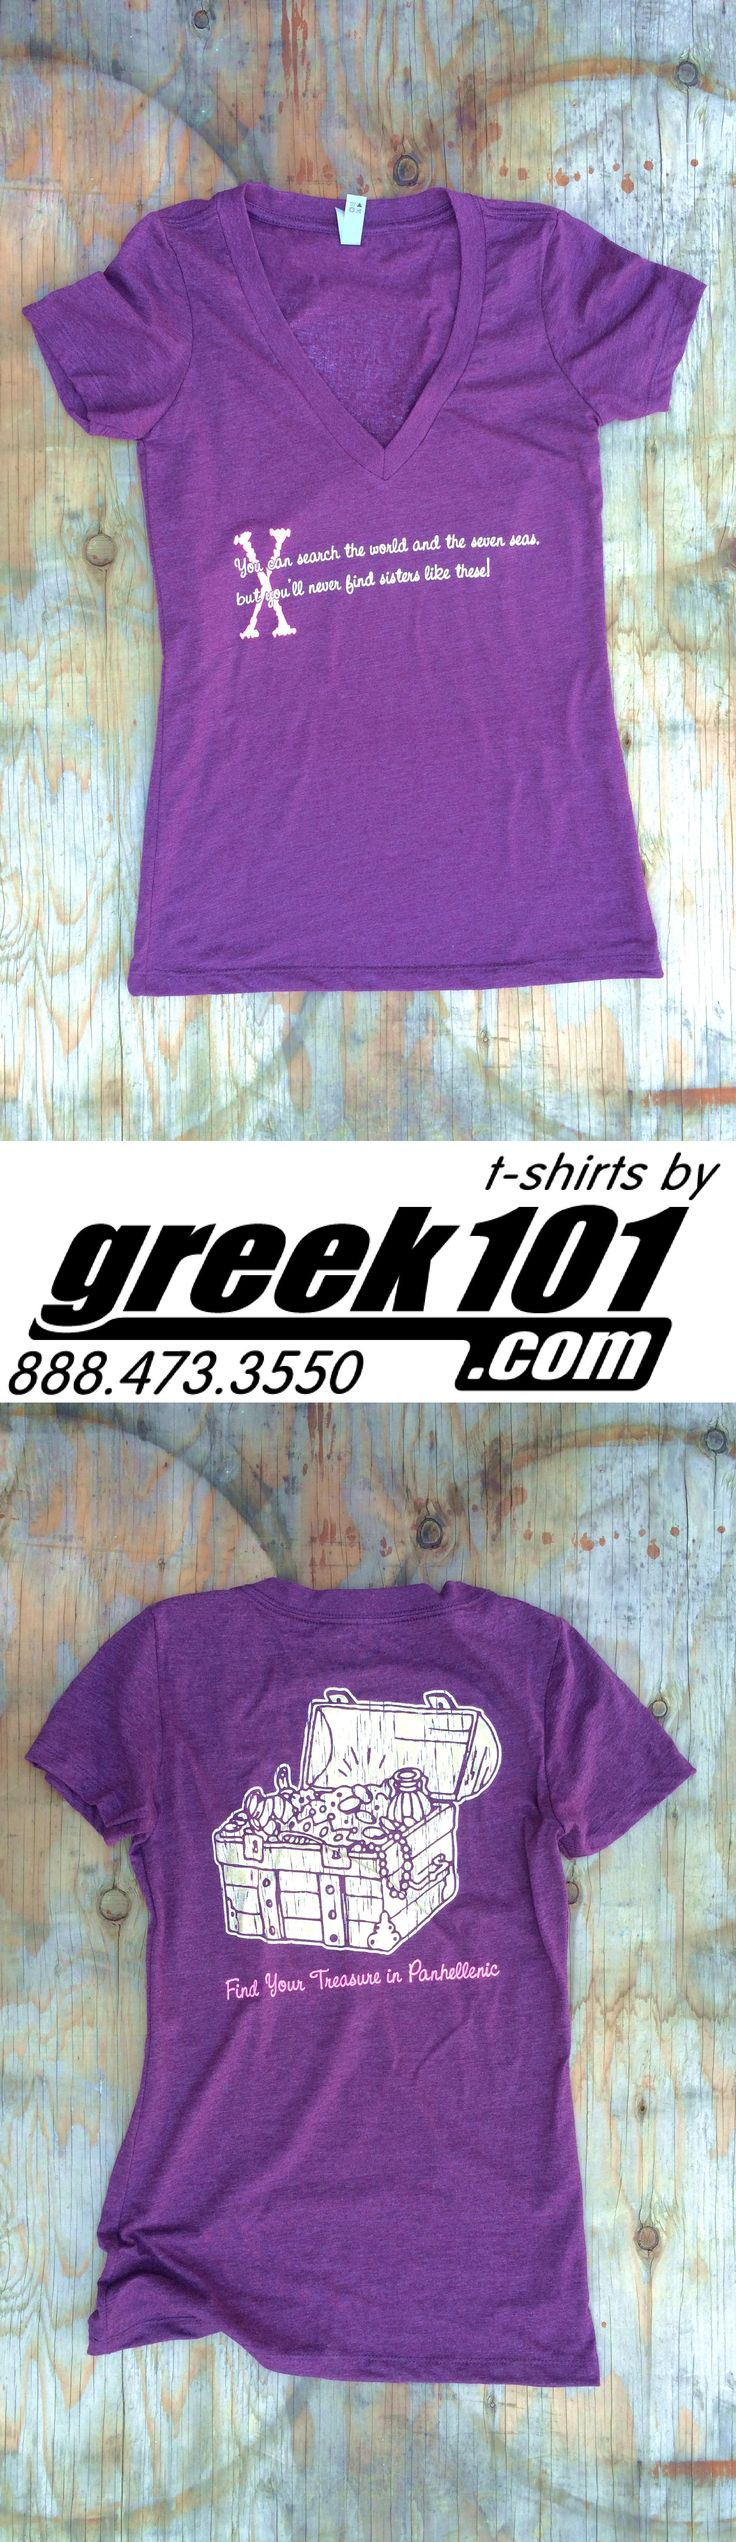 """Panhellenic Sorority Recruitment heather plum v-neck t-shirts x marks the spot treasurer chest, Greek Life - """"You can search the world, and seven seas, but you'll never find sisters like these."""" """"Find your treasurer in Panhellenic."""" Greek101.com, inquire@greek101.com, 888-473-3550 in128038"""